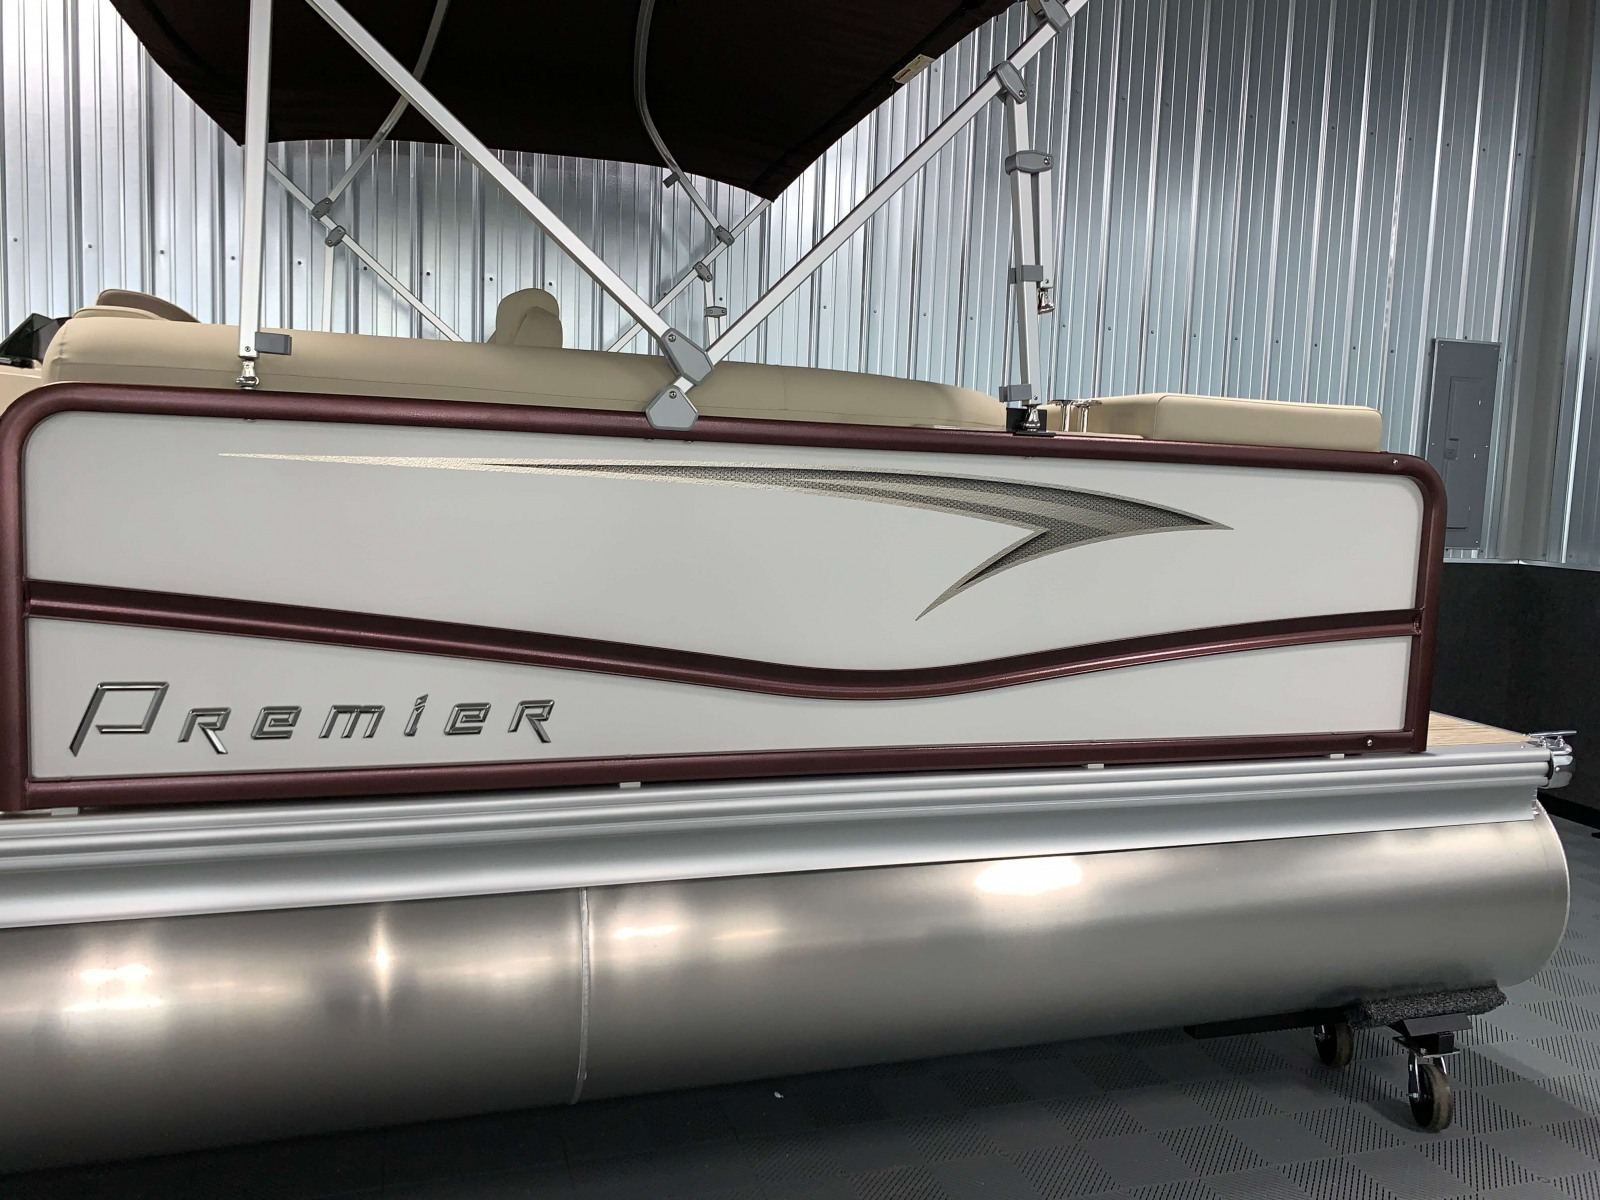 2020-Premier-200-Sunsation-RE-Pontoon-Boat-White-Copper-6